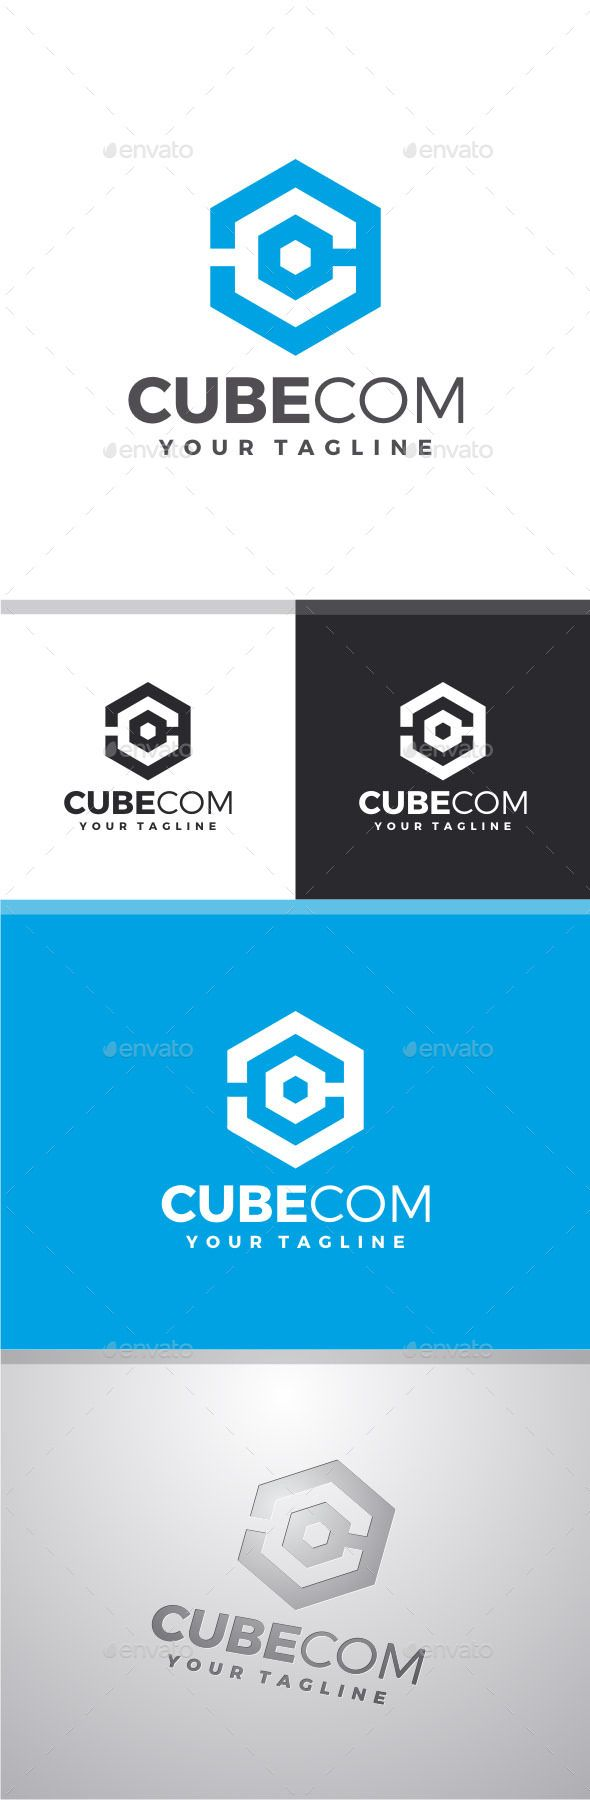 Cubecom Letter C - Logo Design Template Vector #logotype Download it here: http://graphicriver.net/item/cubecom-letter-c-logo/8232366?s_rank=1390?ref=nexion